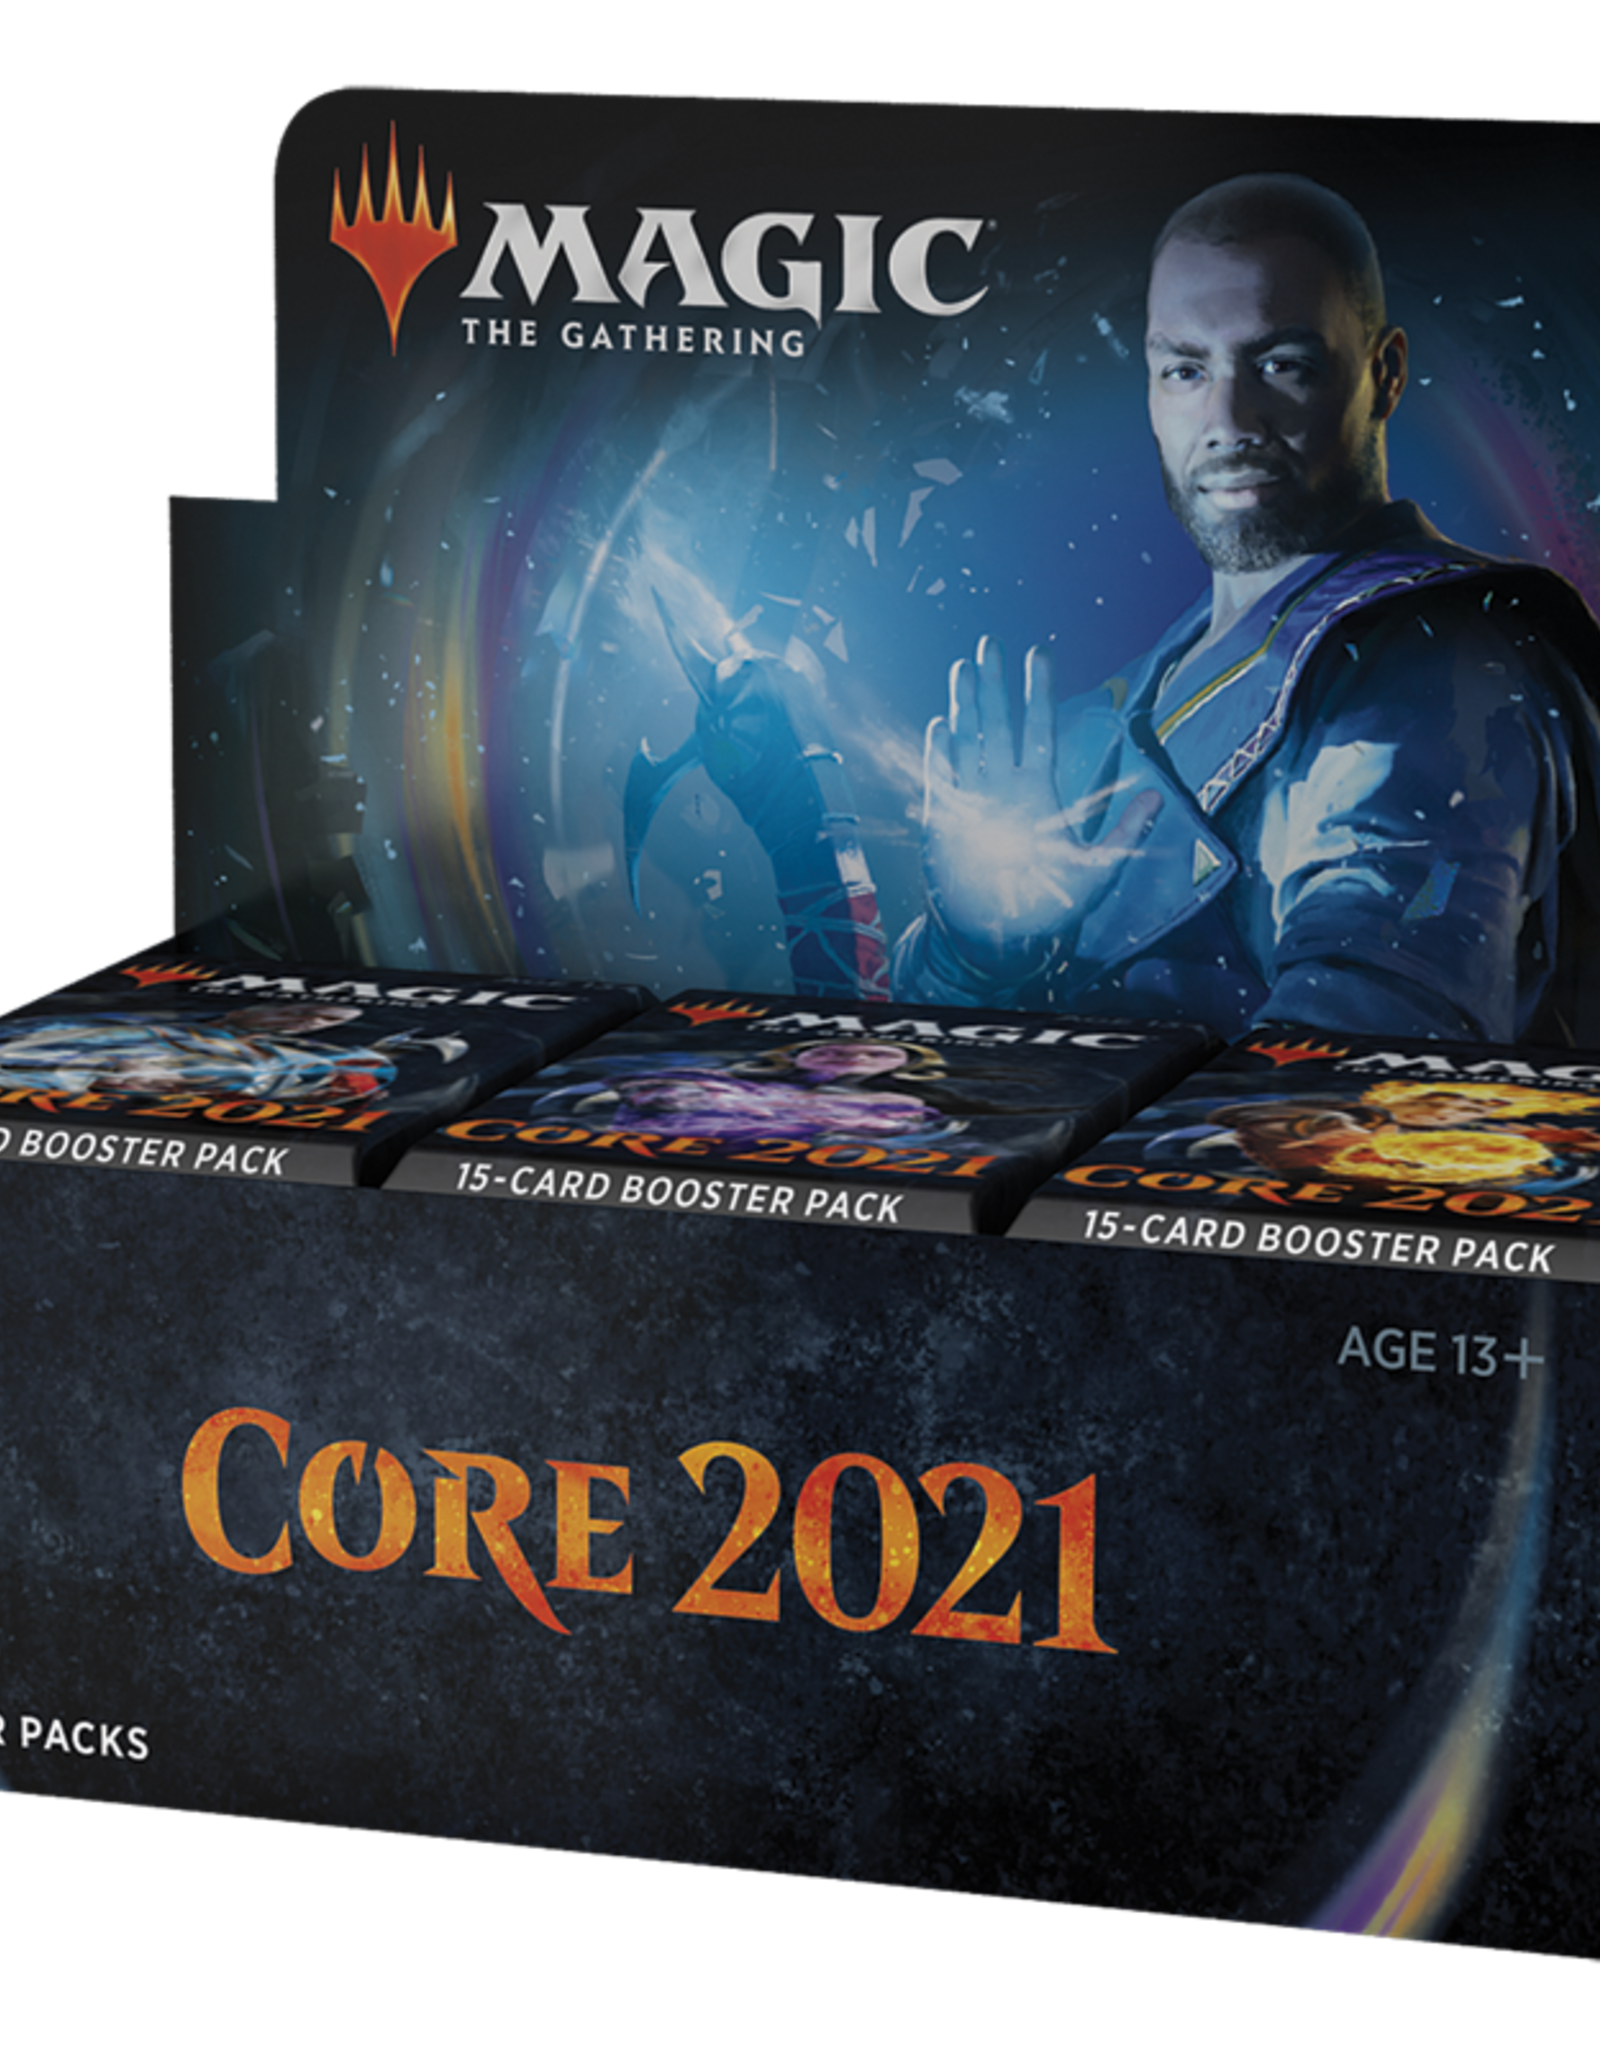 WIZARDS OF THE COAST MAGIC THE GATHERING CORE 2021 DRAFT BOOSTER BOX